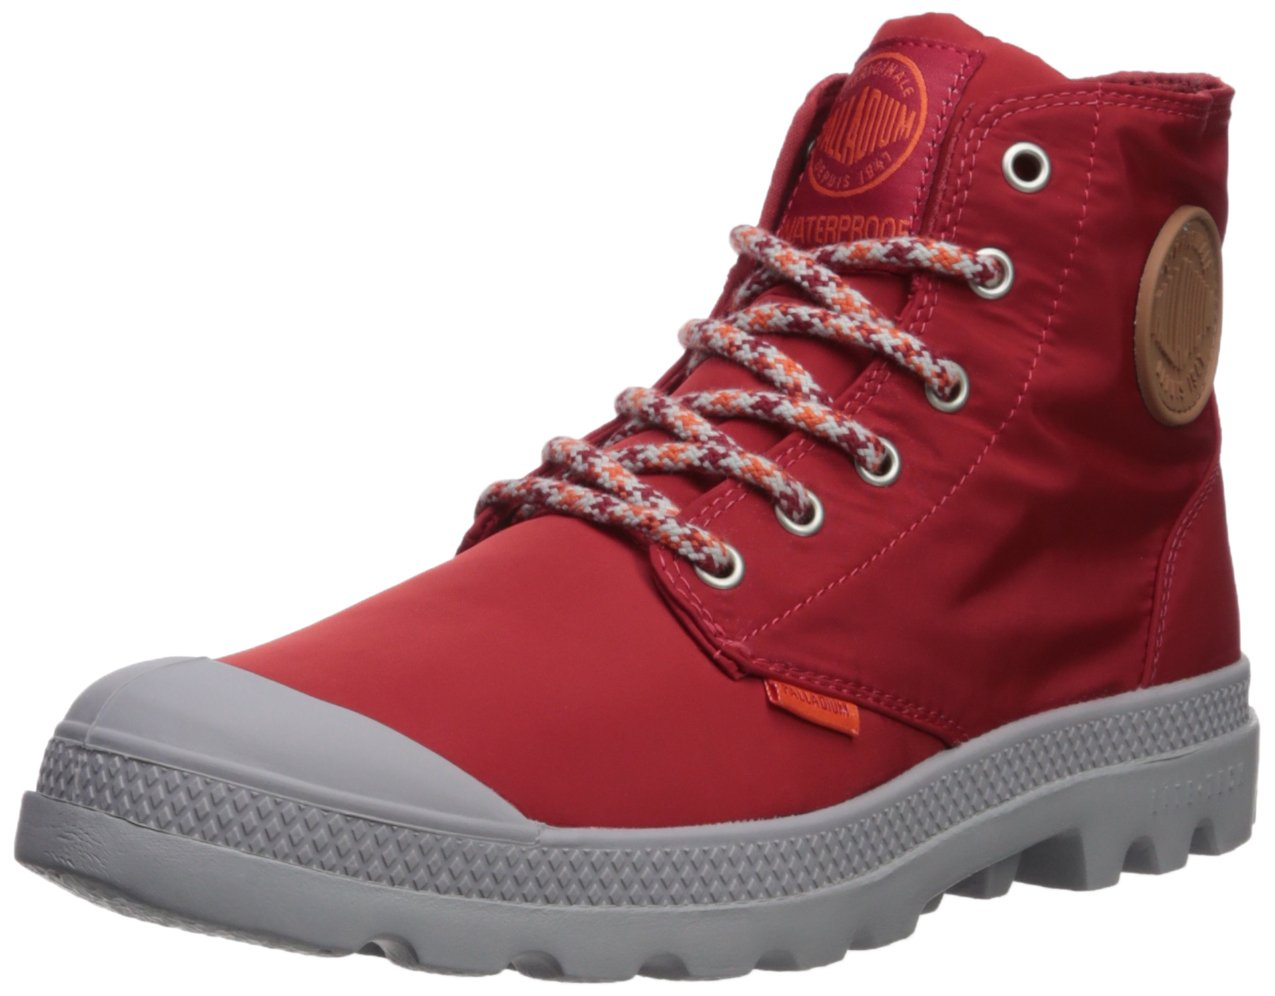 Palladium Unisex Puddle Ankle Boot B074P8BGRW 9.5 B(M) US|Red